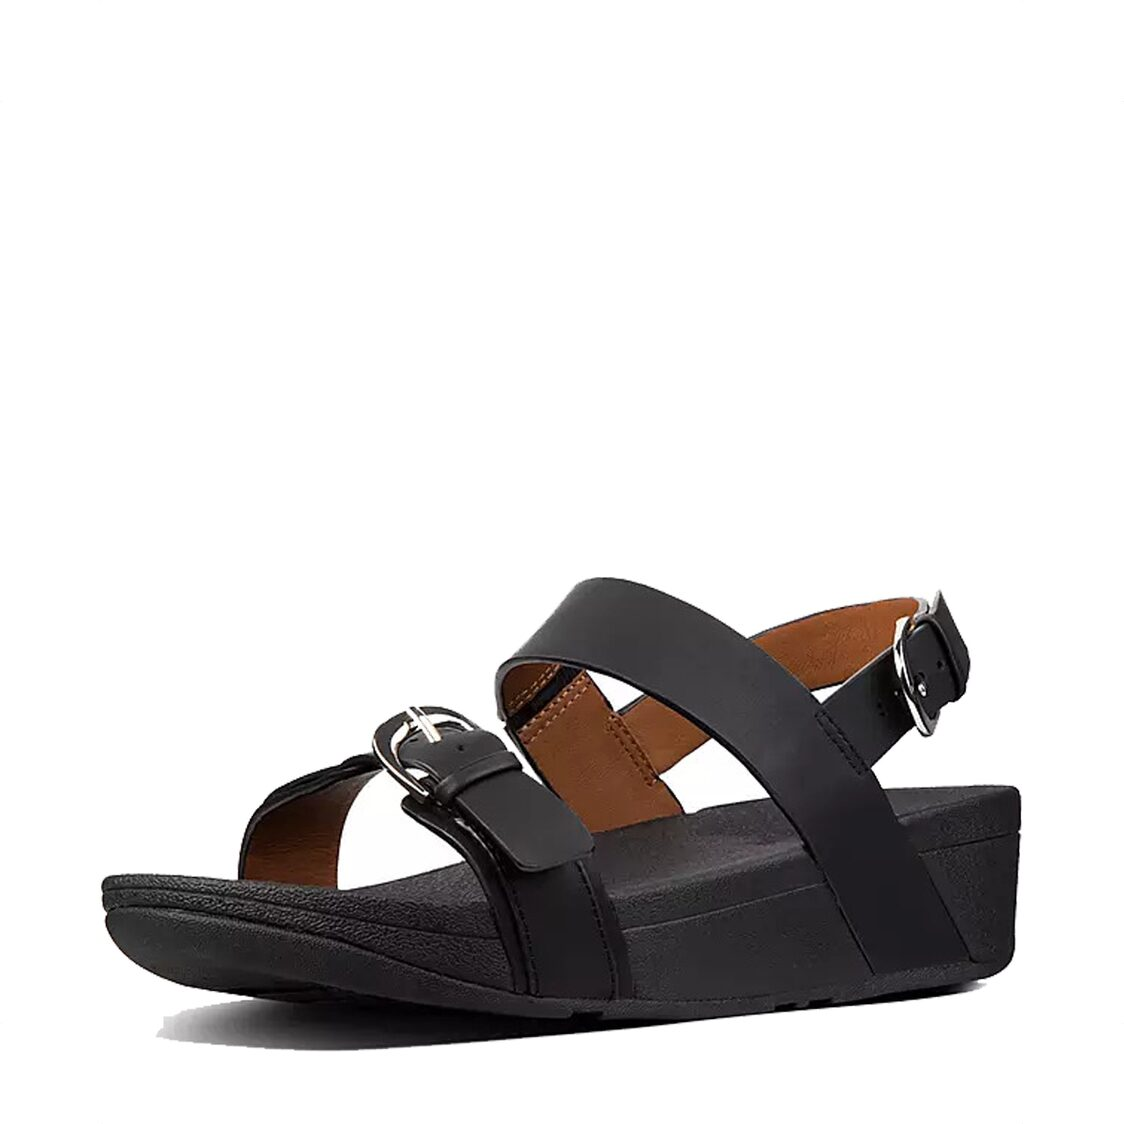 FitFlop Edit Sandal Back-Strap Sandals Black